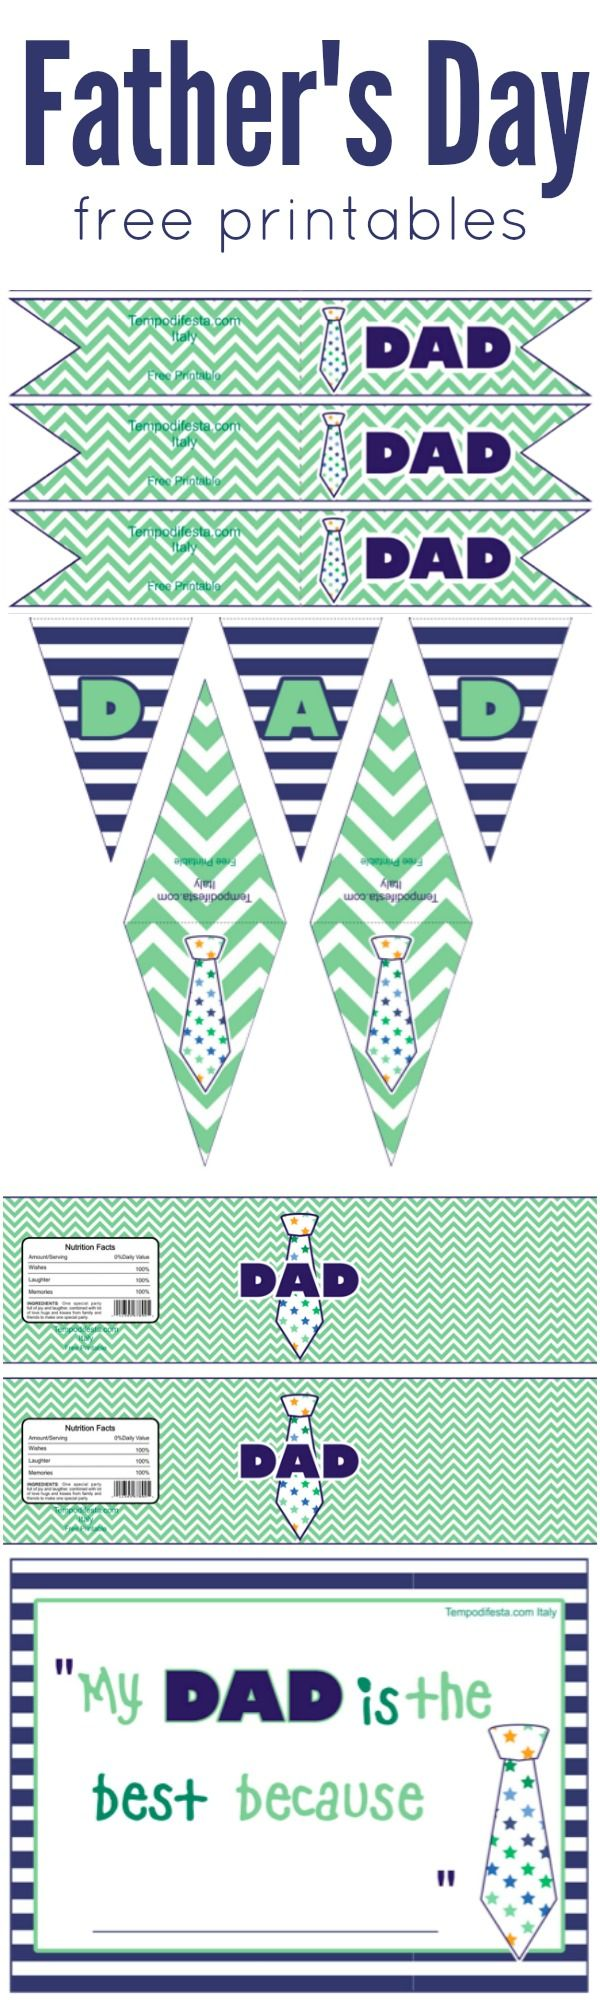 Make Father's Day extra special with these brand new free printables www.weheartparties.com